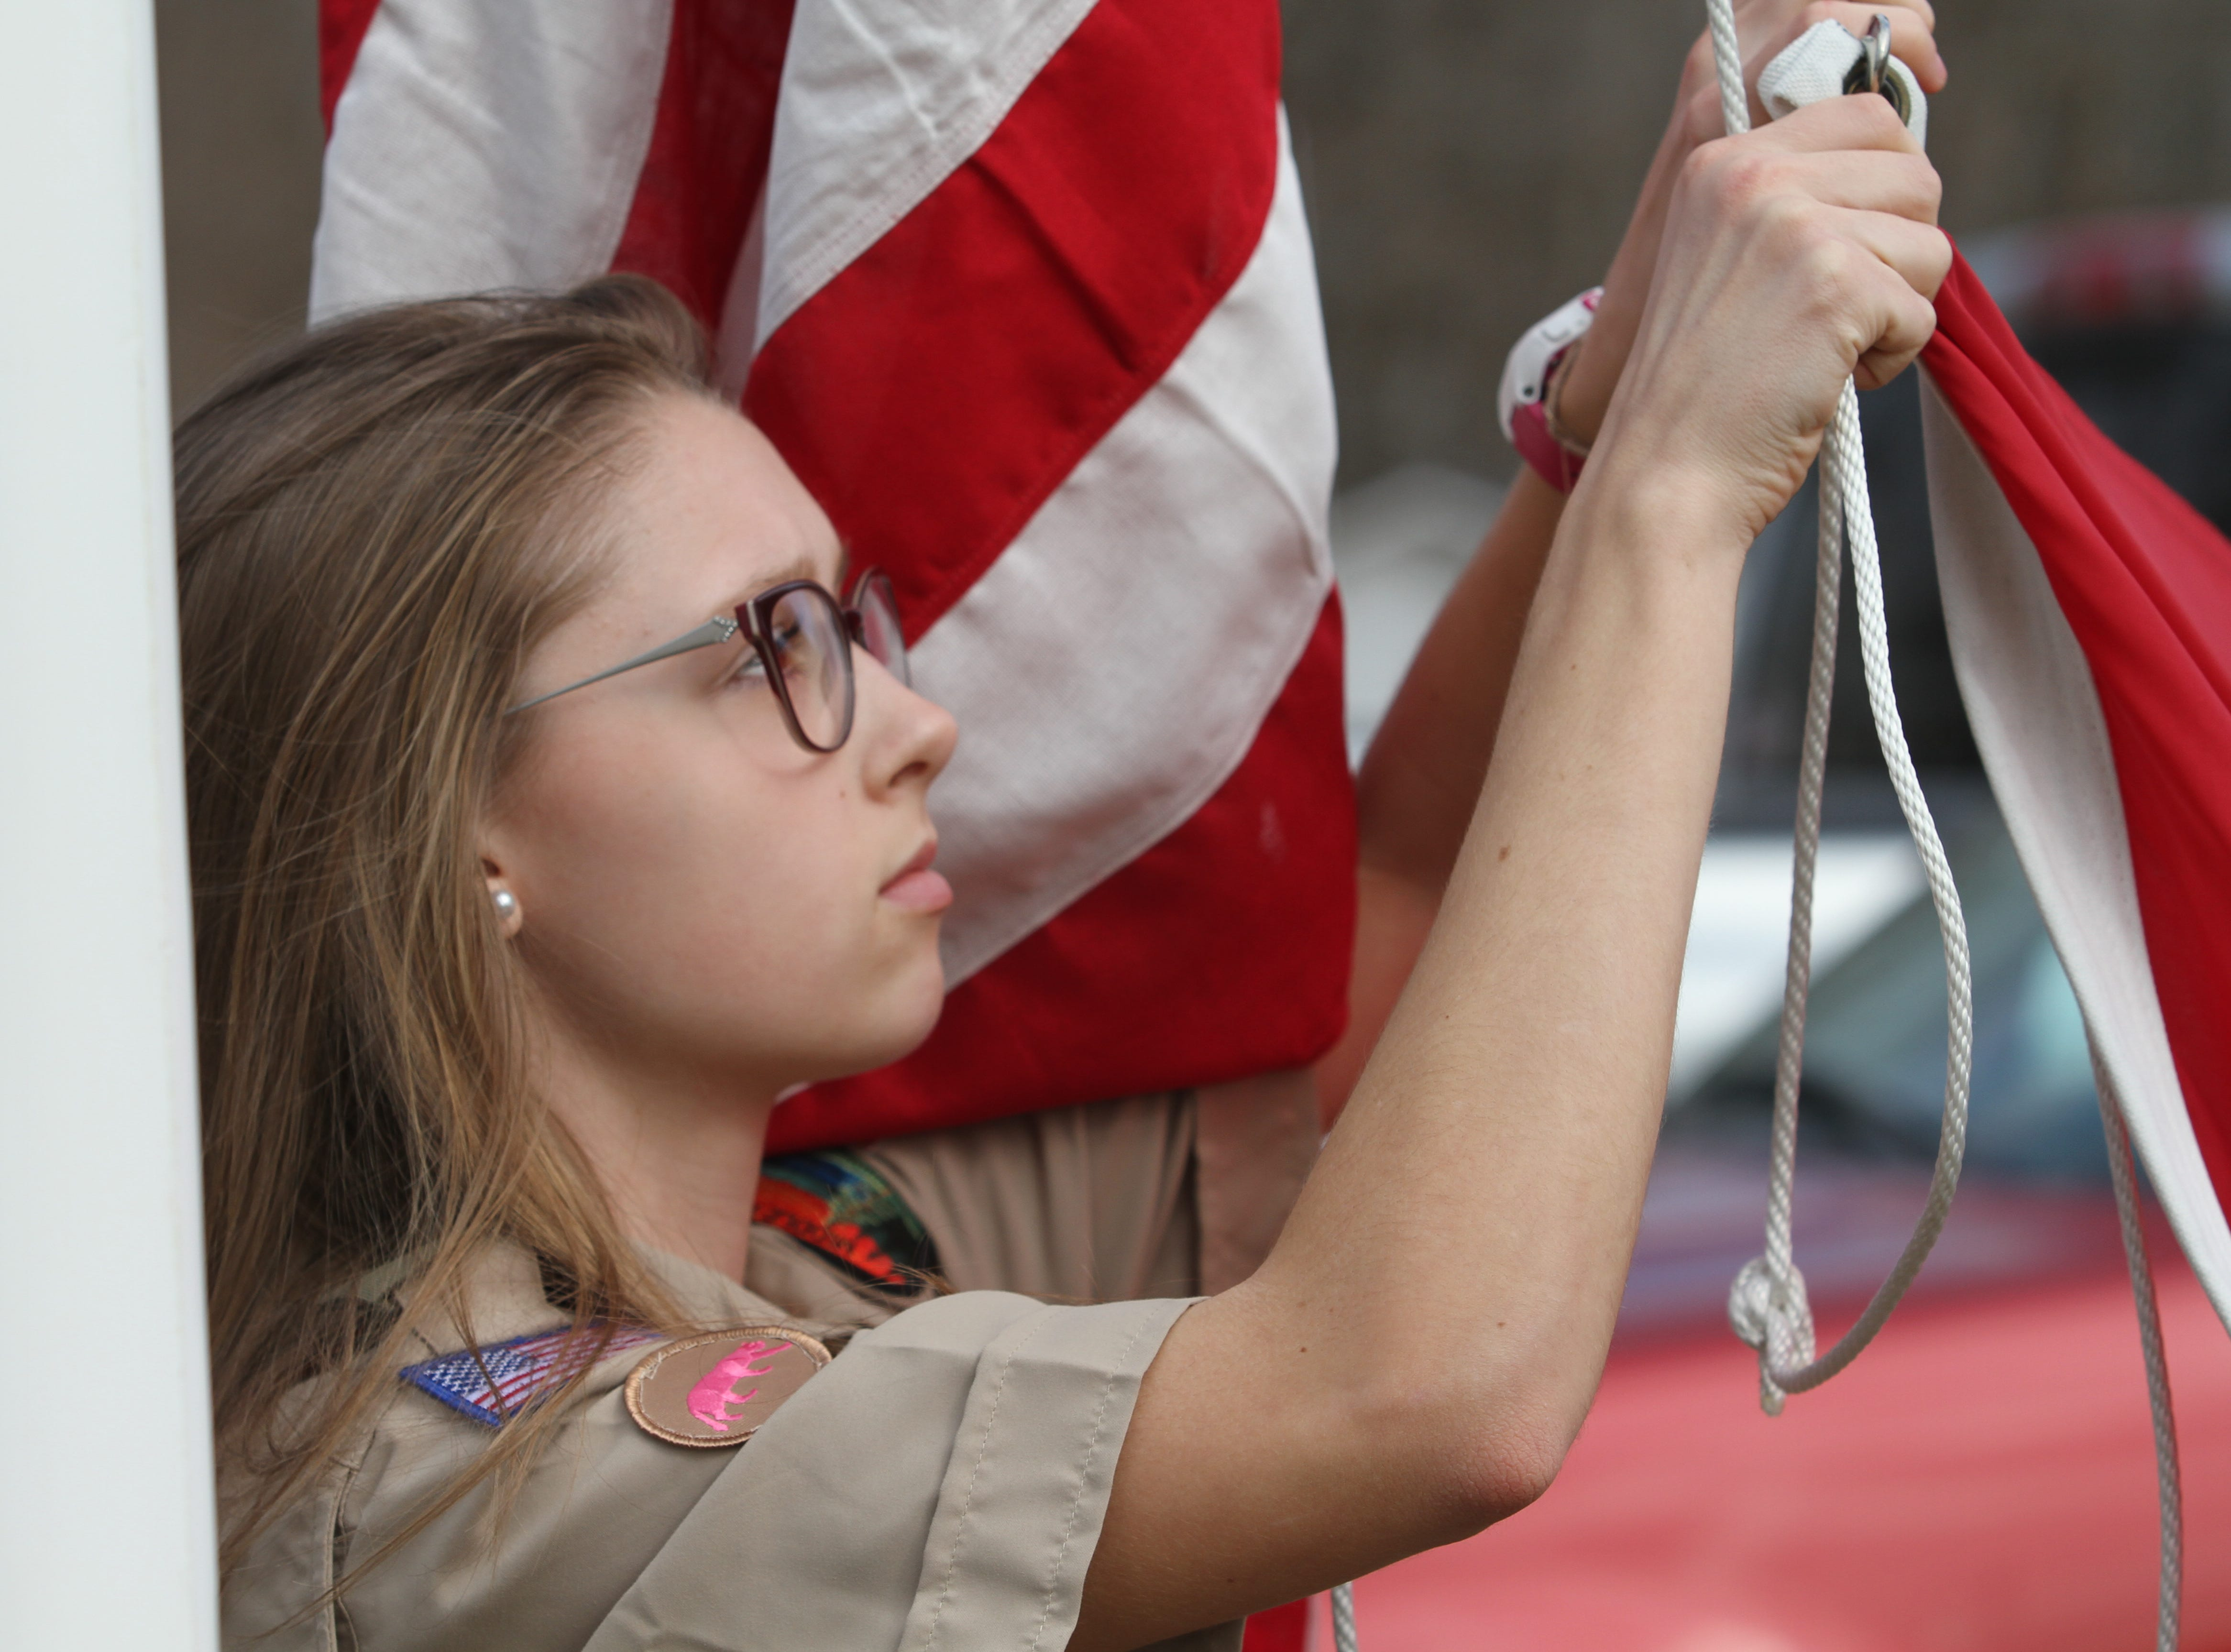 Clarksville, Tennessee's first all-female Scouts BSA Troop 21 held its inaugural lock-in event on the first weekend of February, 2019.